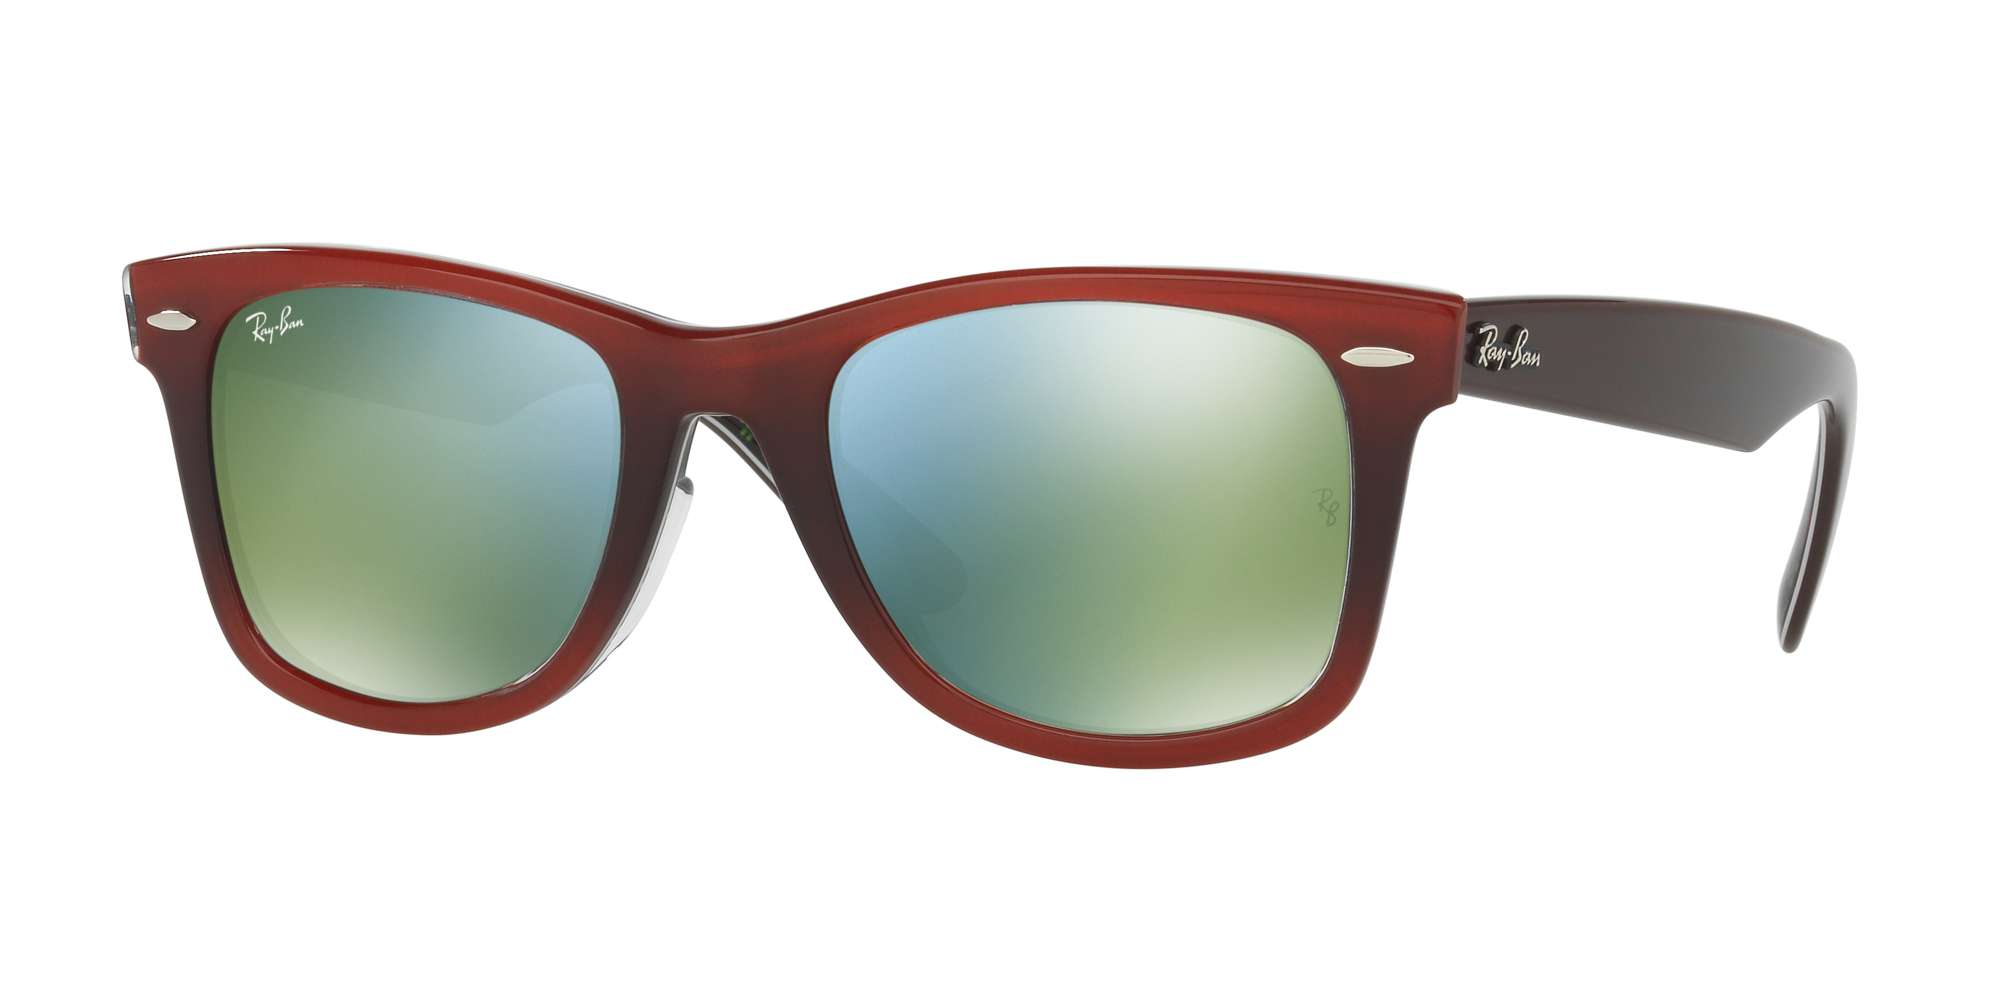 TOP GRAD RED ON LIGHT RE / MIRROR GREEN lenses